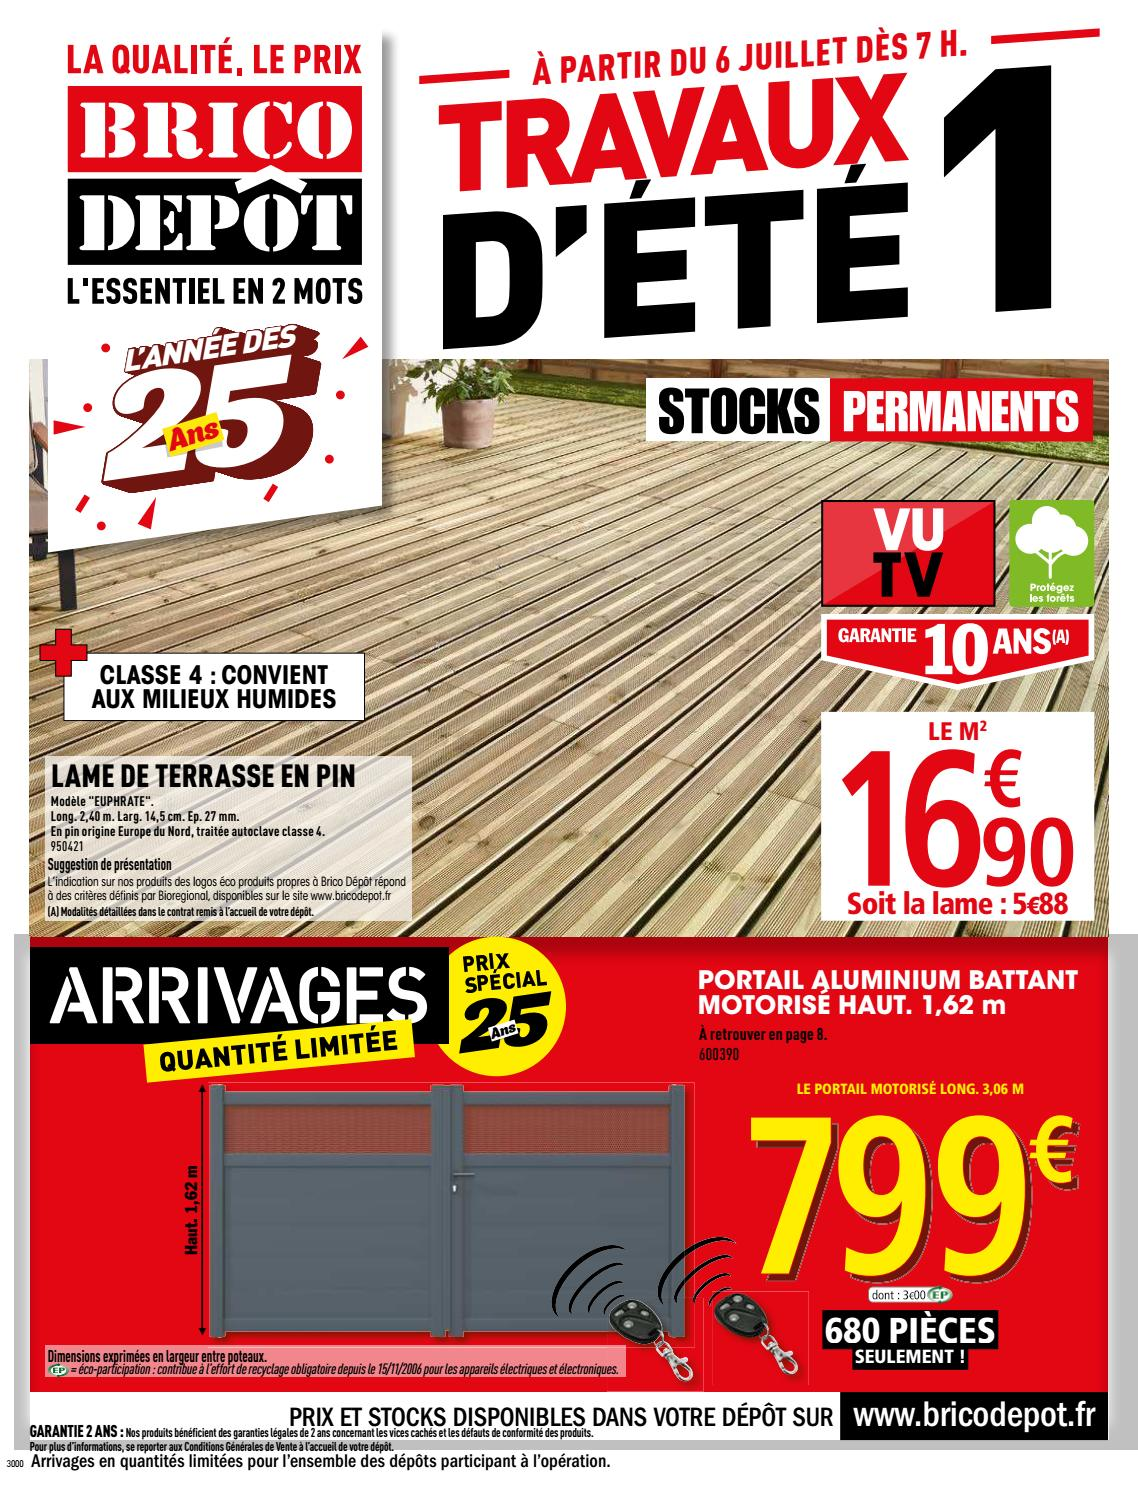 Store Banne Brico Depot Aigues Vives Dep060718 1 By Jan Deo Issuu